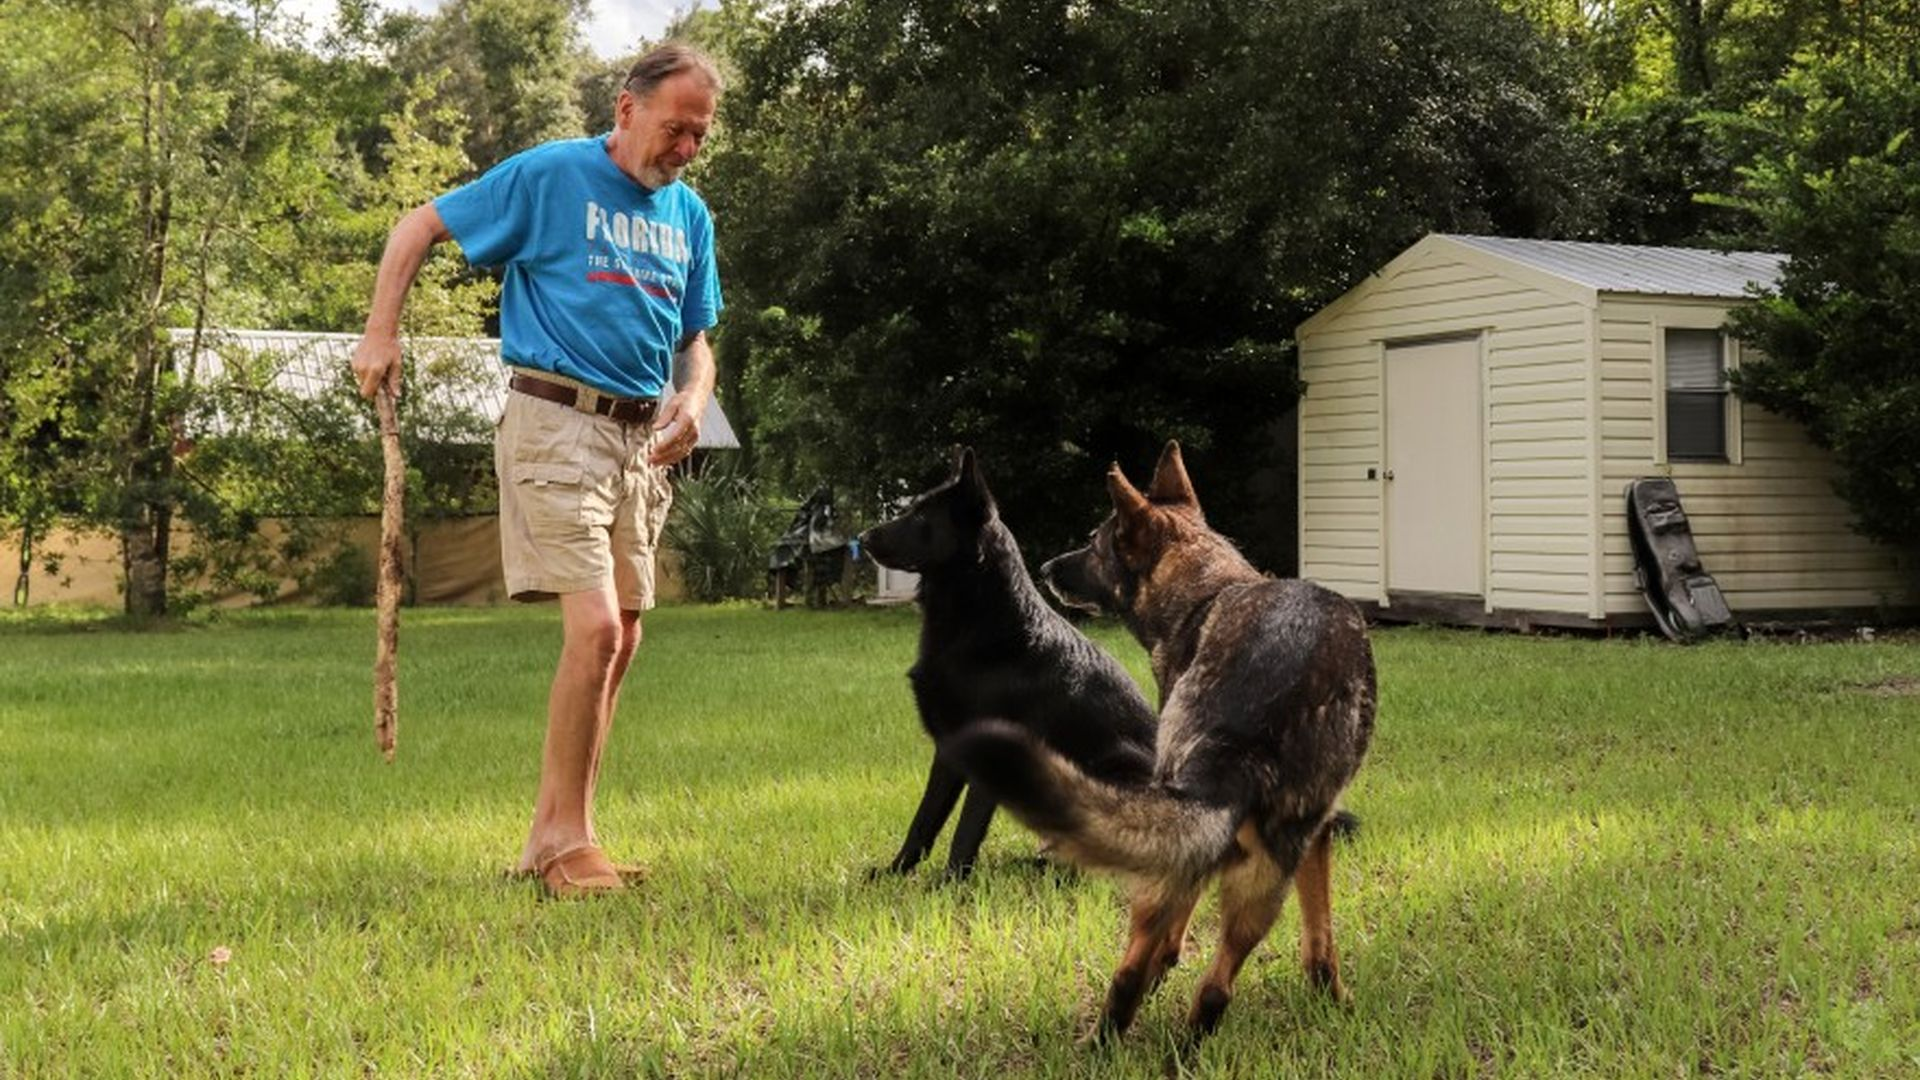 Dog Saves Owner's Life From A Sudden Stroke By Alerting The Neighbor